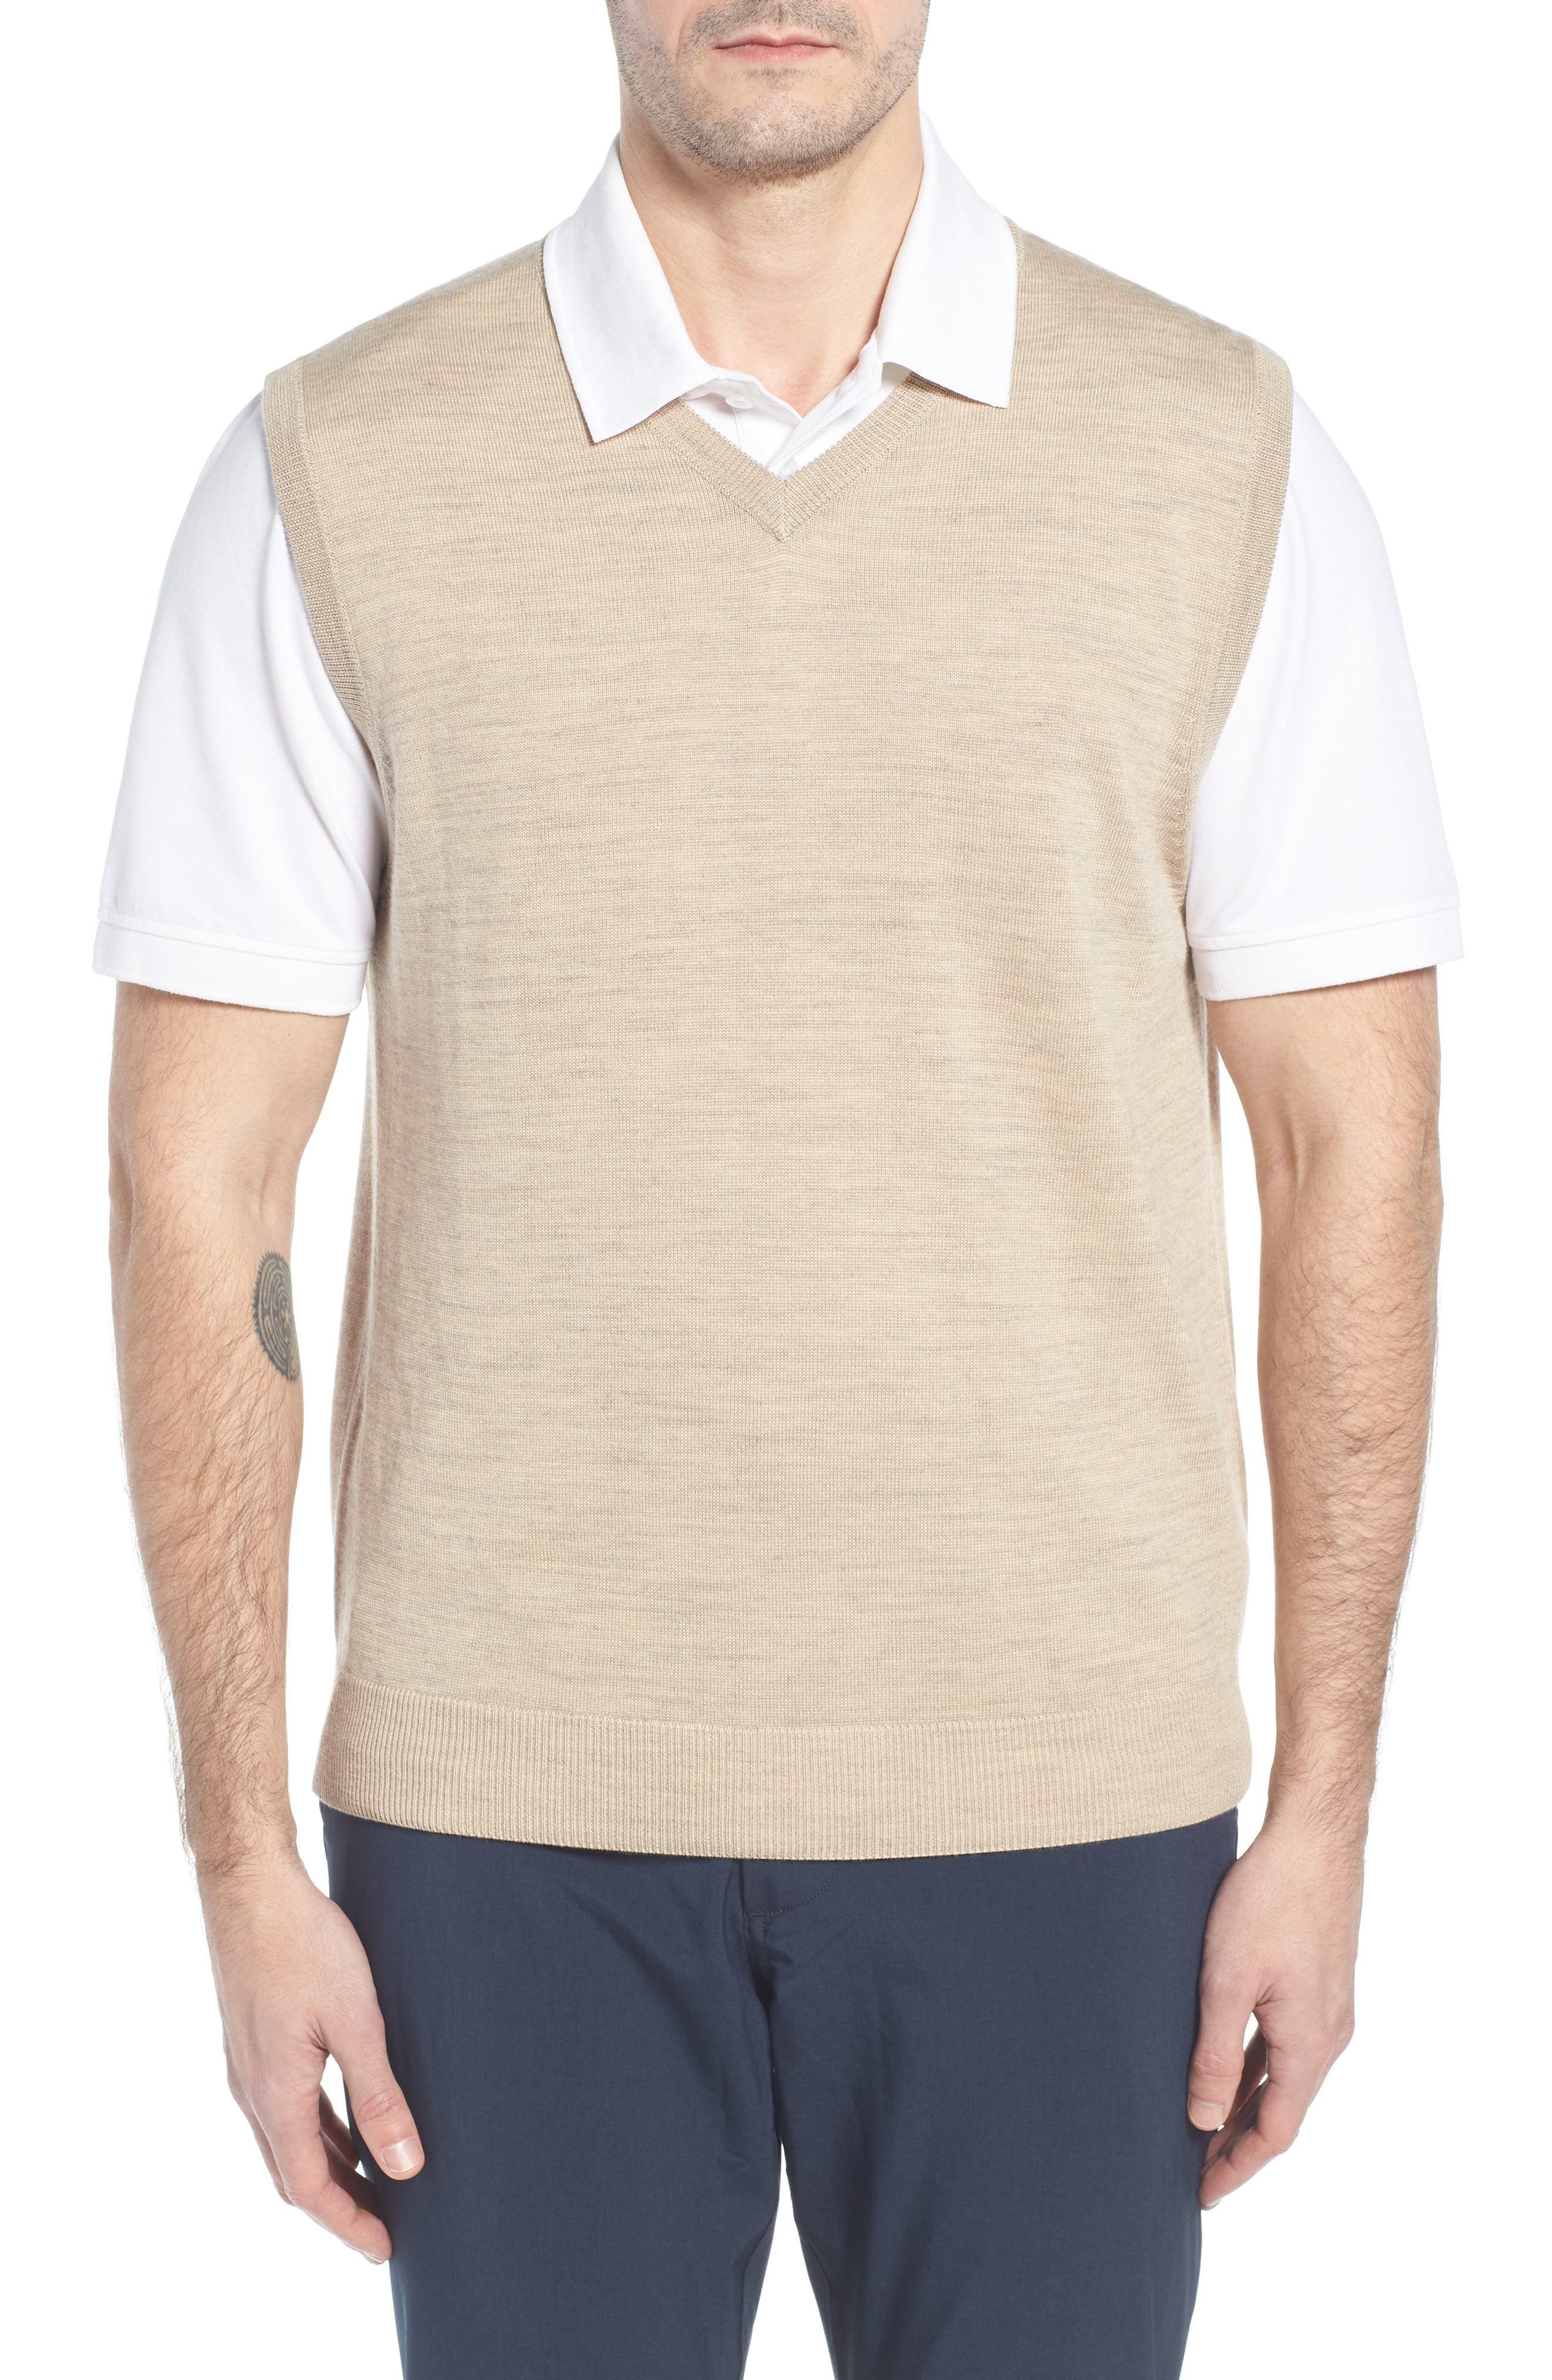 'Douglas' Merino Wool Blend V-Neck Sweater Vest,                         Main,                         color, SAND HEATHER